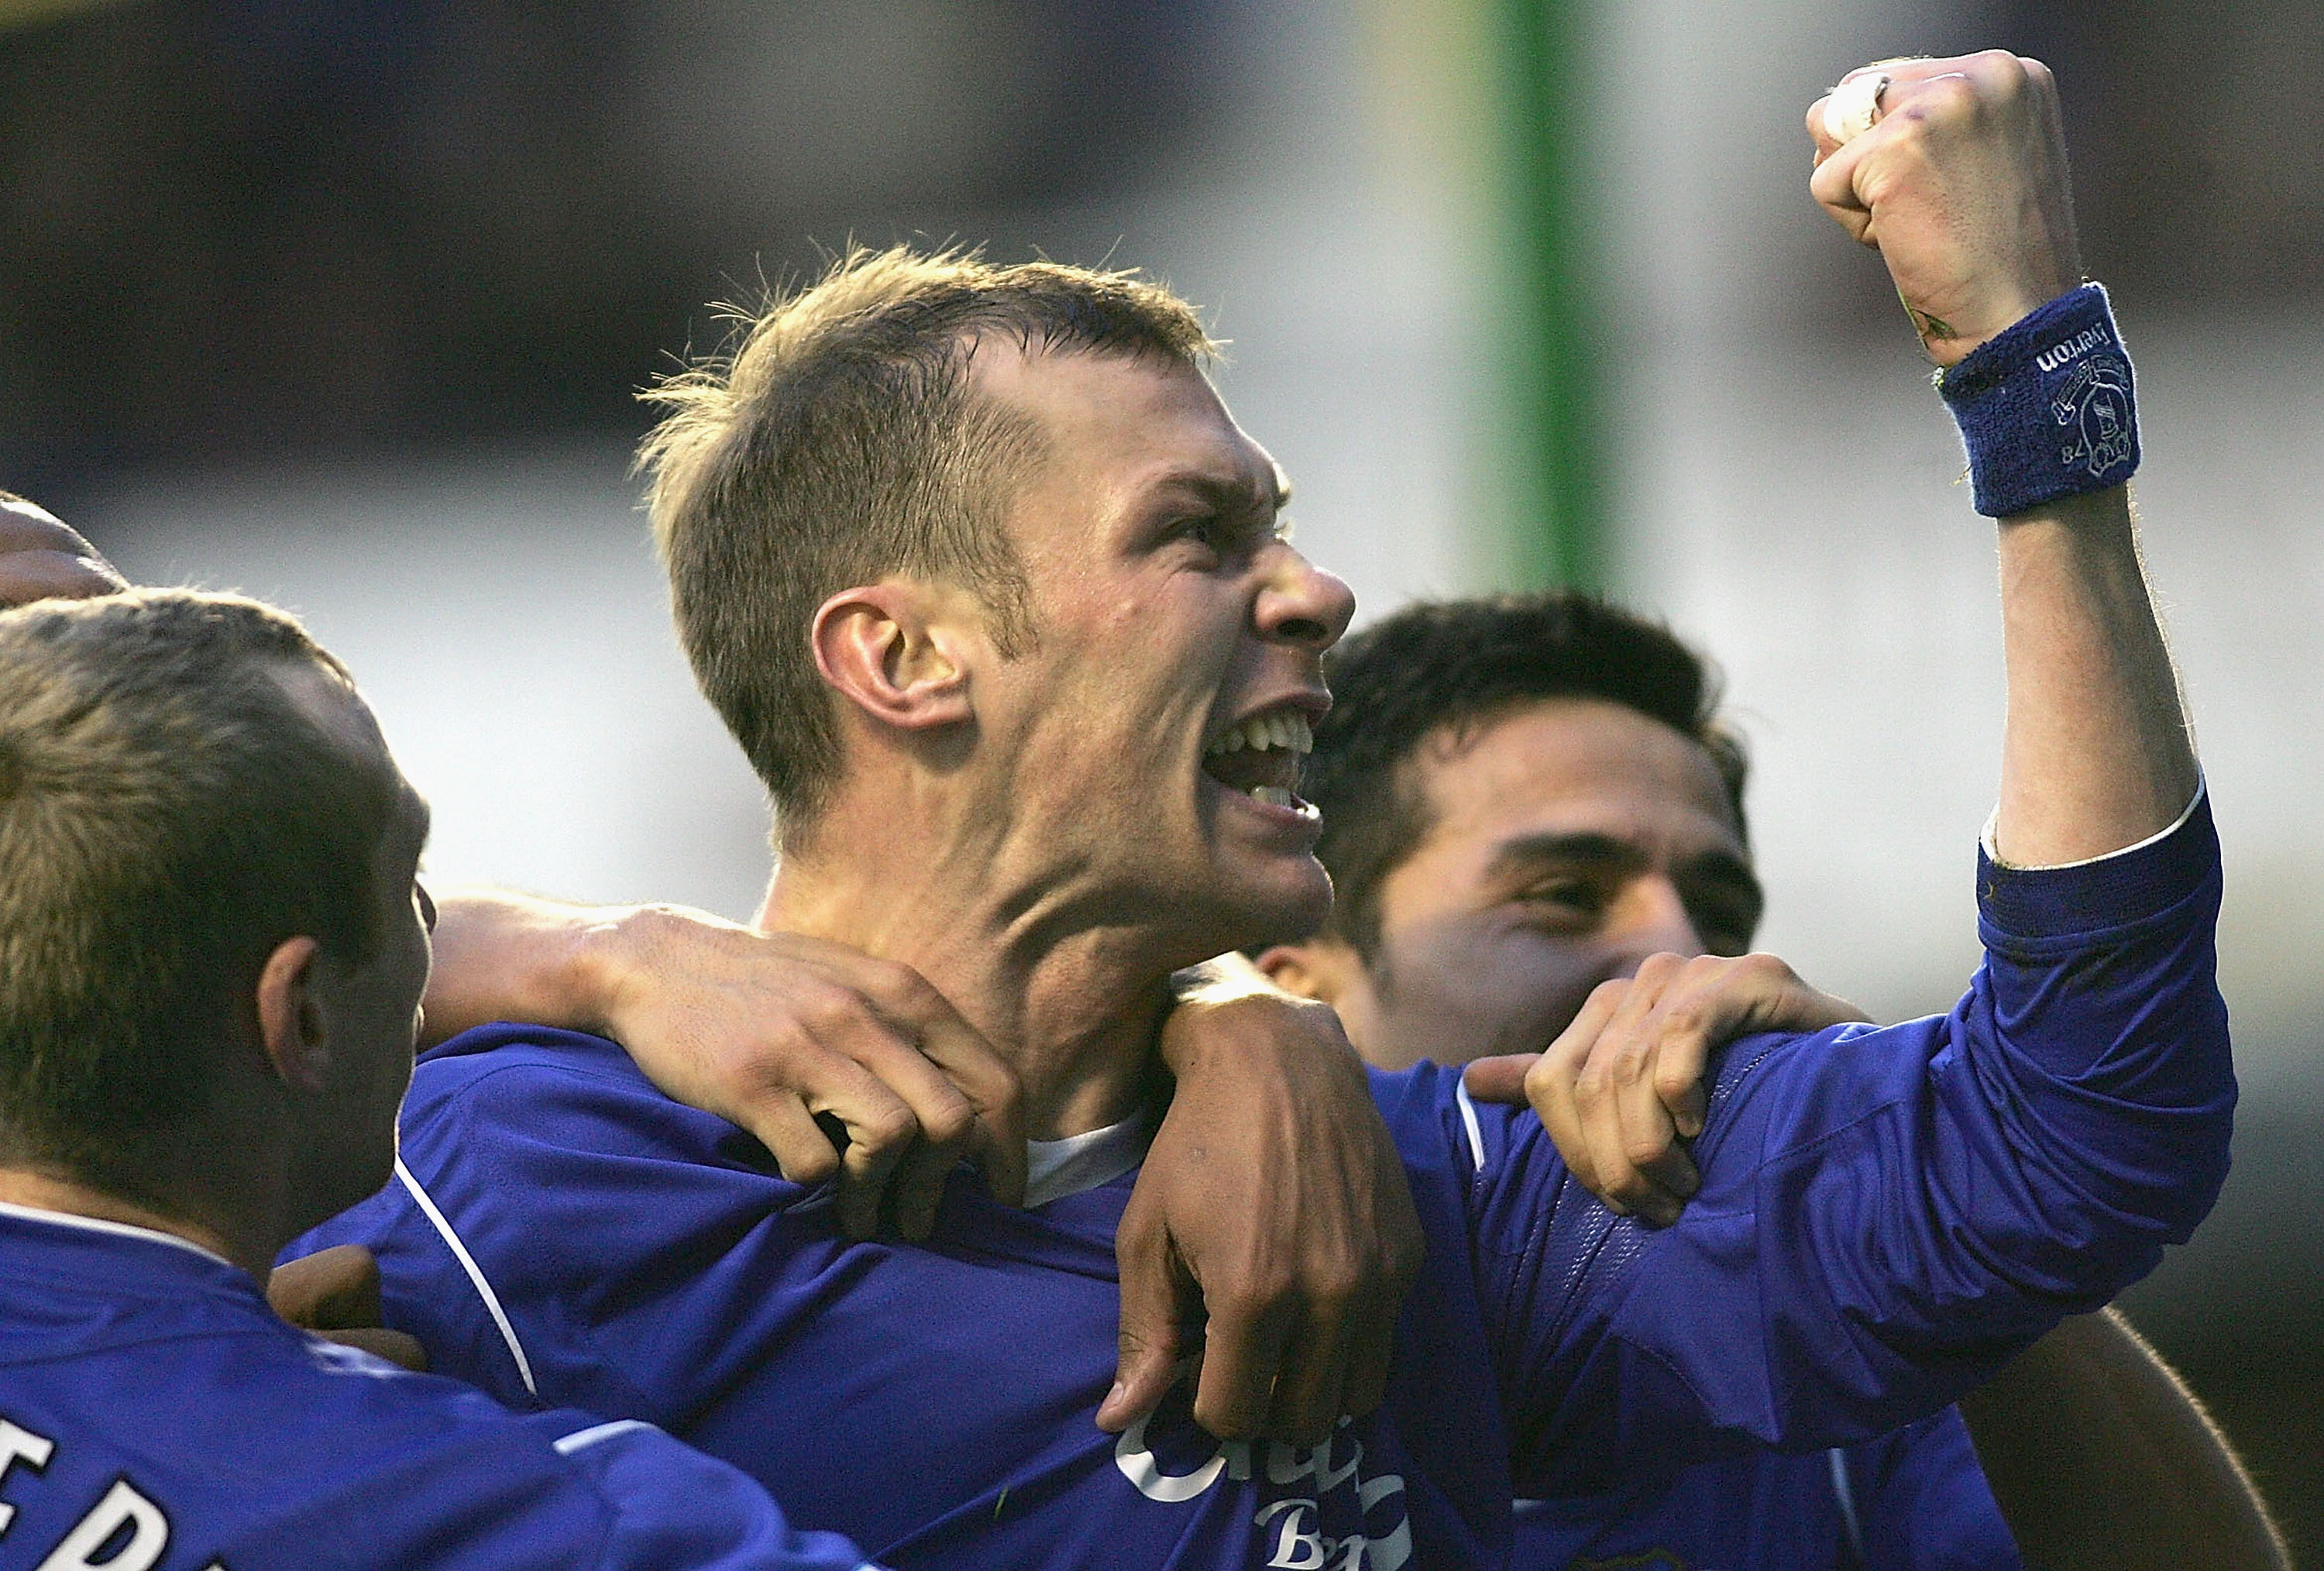 LIVERPOOL, ENGLAND - DECEMBER 4: Duncan Ferguson of Everton celebrates the equaliser during the Barclays Premiership match between Everton and Bolton Wanderers at Goodison Park on December 4, 2004 in Liverpool, England.  (Photo by Michael Steele/Getty Ima